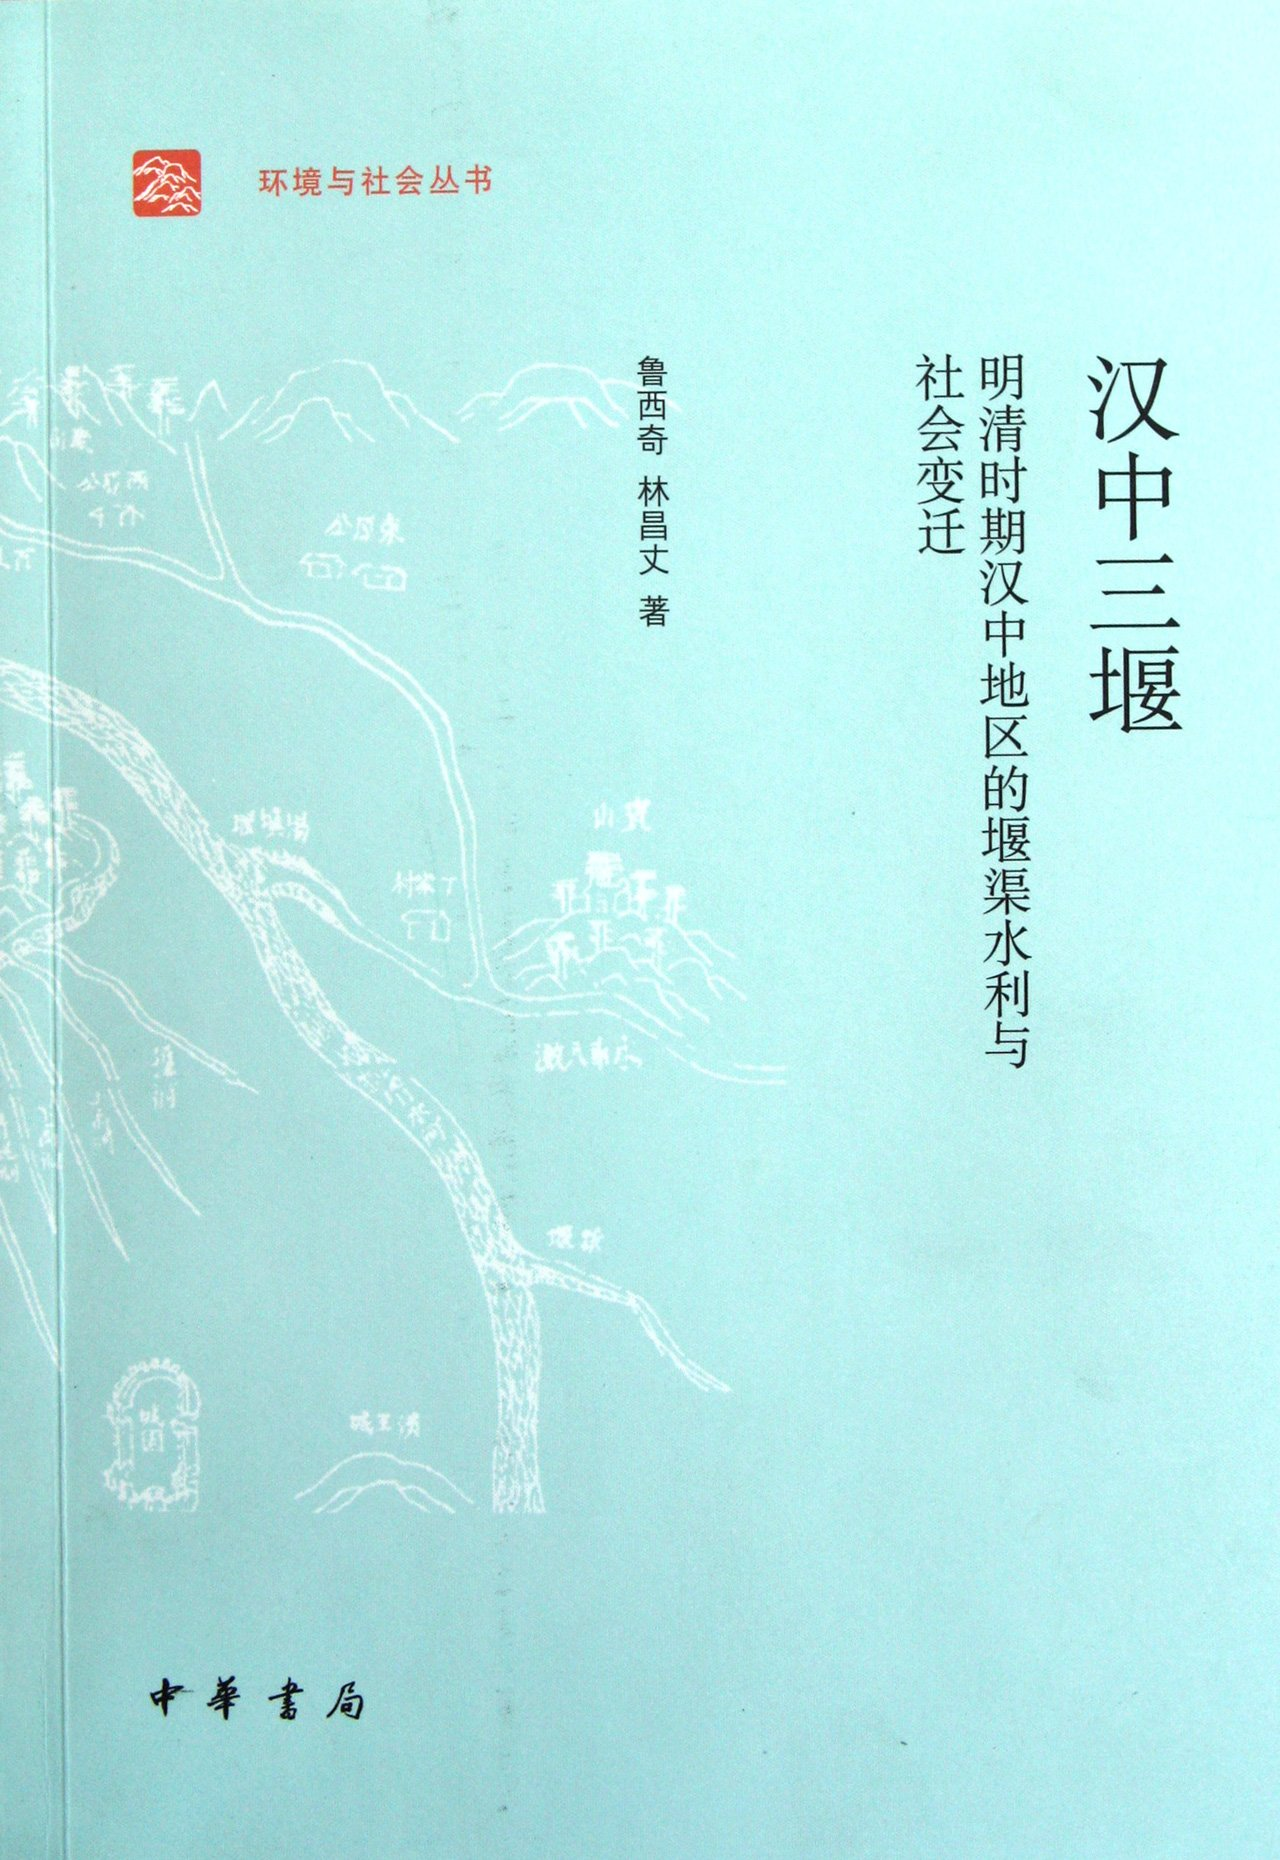 Download Hanzhong Sanyan: Water Conservancy in Weir and Social Change in Hanzhong Area during Ming and Qing Dynasties (Chinese Edition) ebook